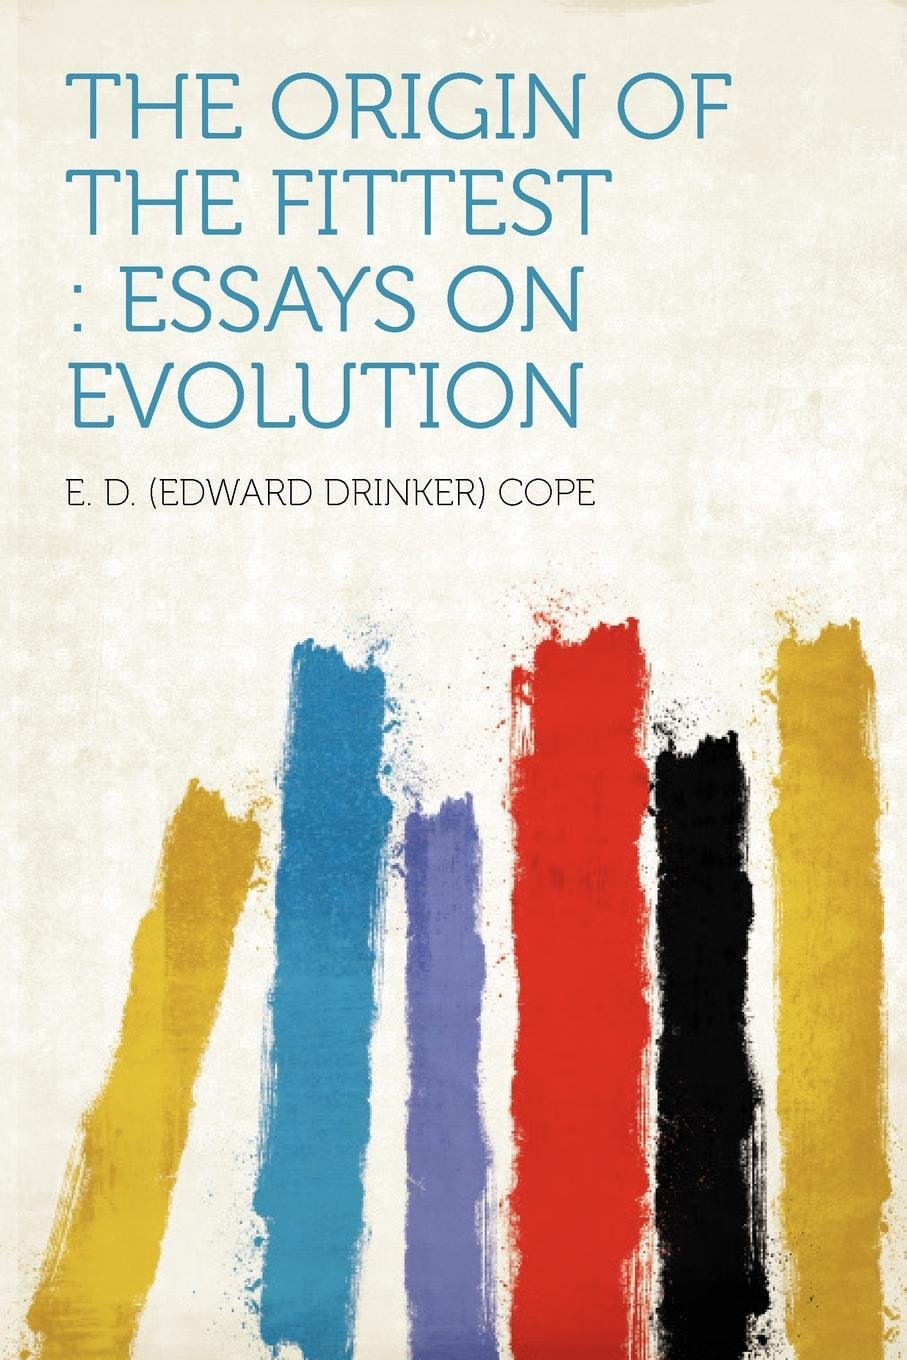 Science Essay Questions The Origin Of The Fittest Essays On Evolution E D Edward Drinker  Cope  Amazoncom Books High School Experience Essay also English Essays The Origin Of The Fittest Essays On Evolution E D Edward  The Benefits Of Learning English Essay